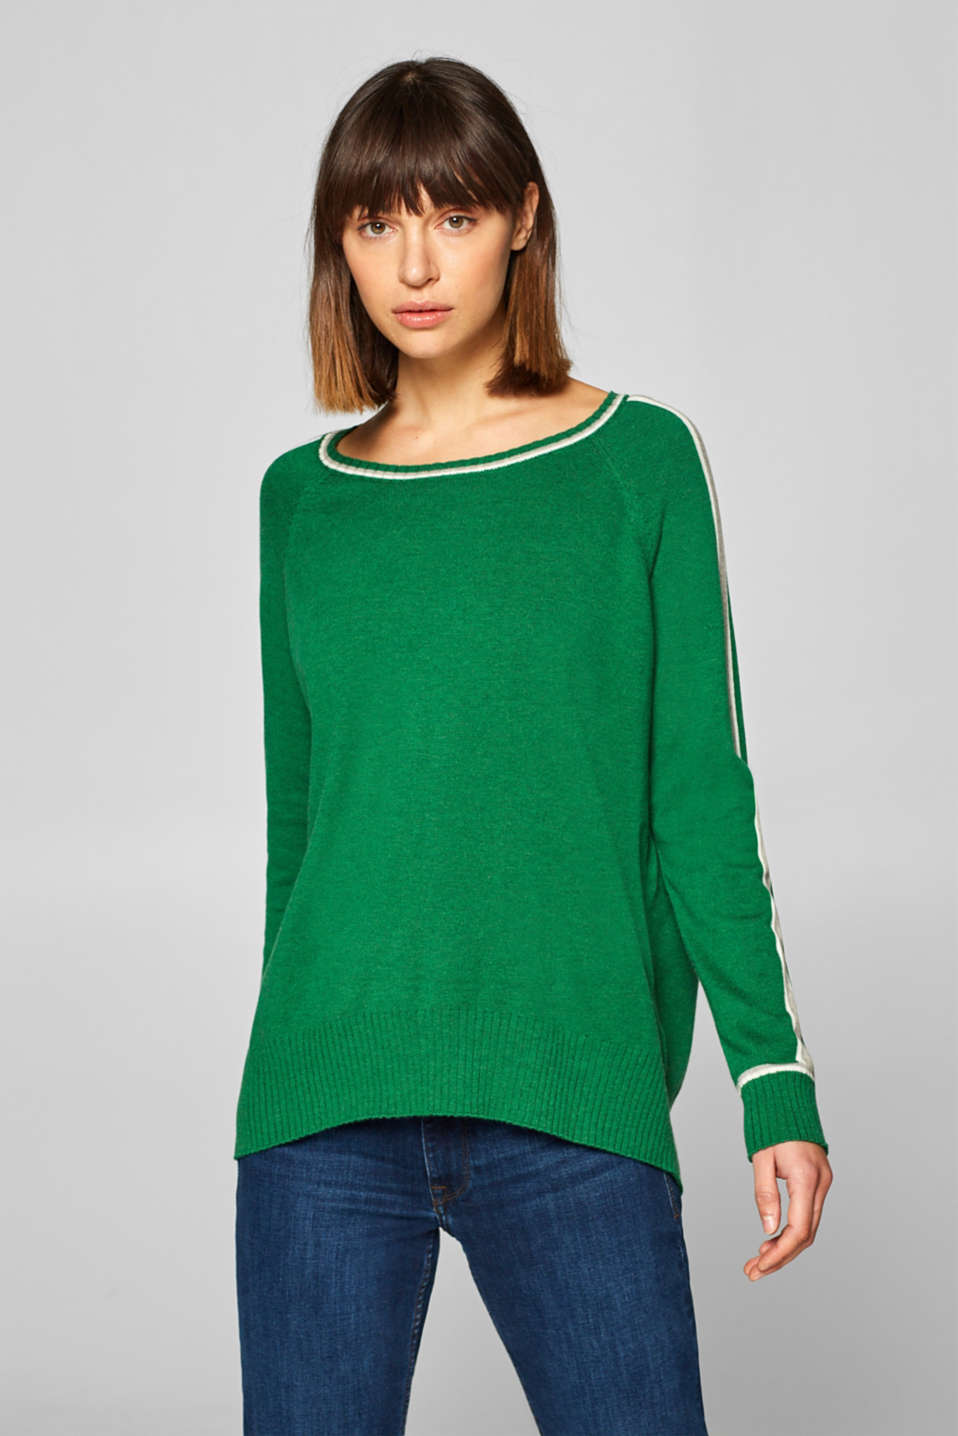 Esprit - Containing wool: jumper with contrasting stripes